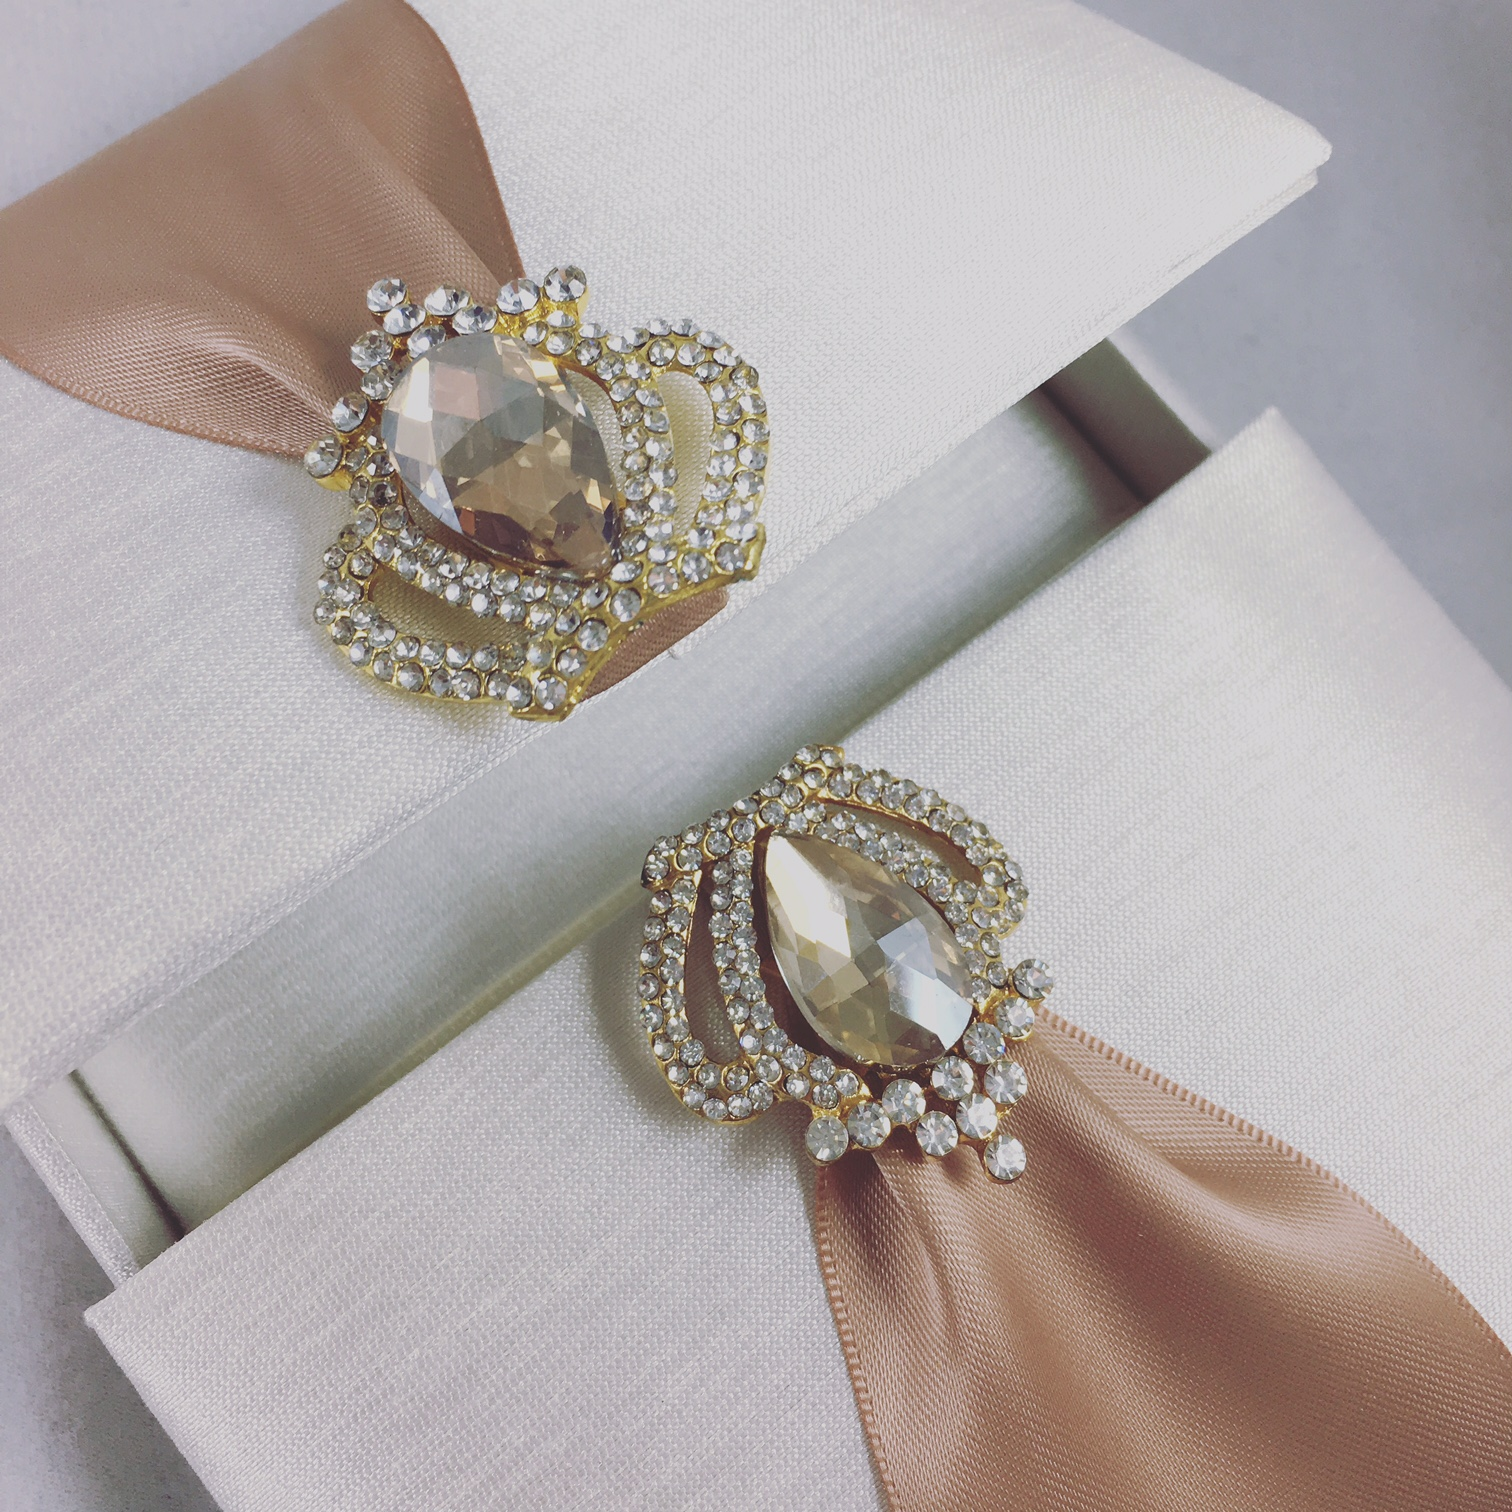 EMBELLISHED INVITATION BOXES Archives - Page 4 of 14 - Luxury ...